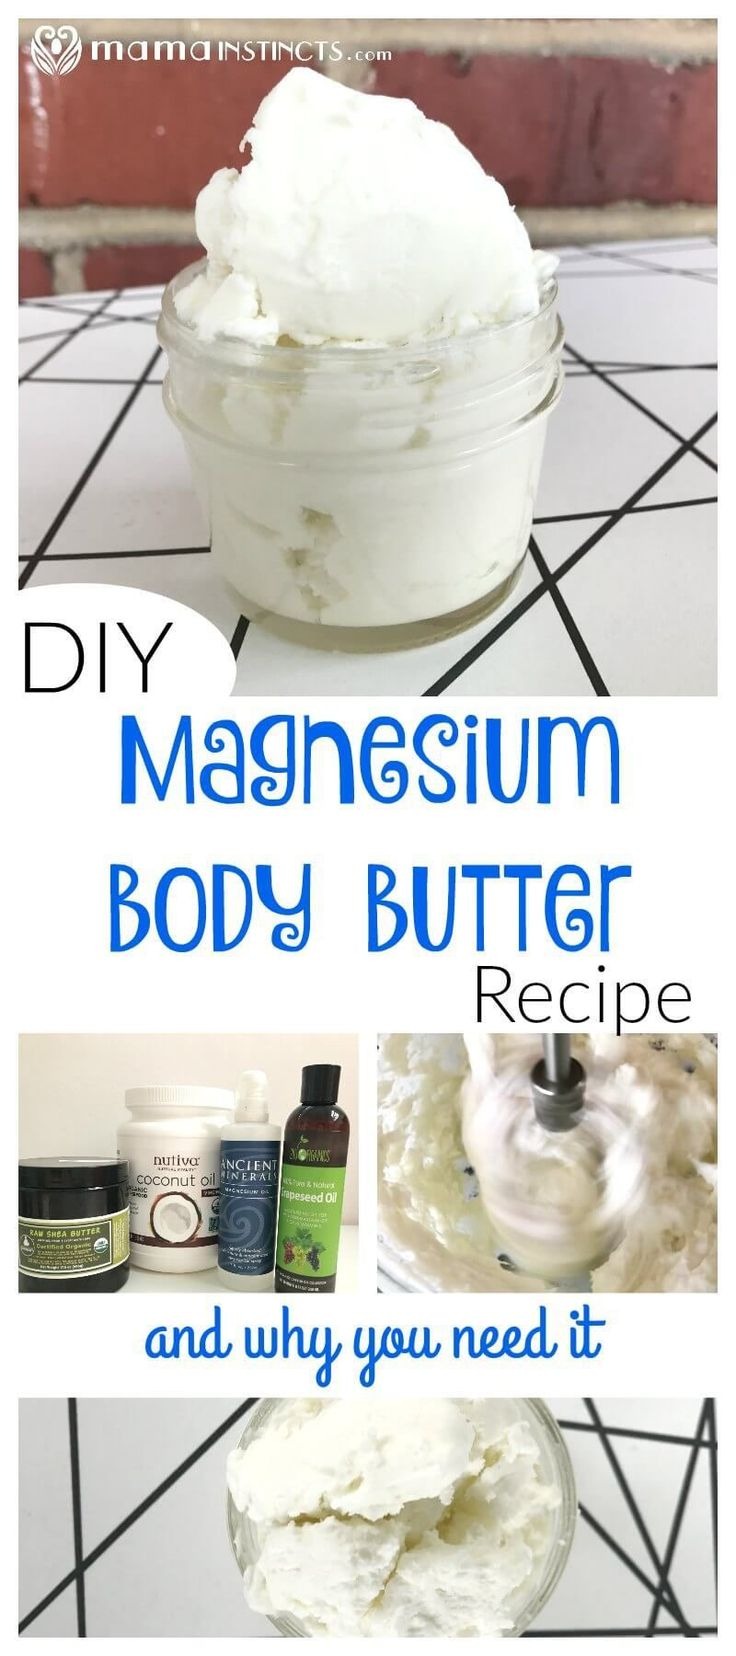 Most people have deficient magnesium levels. Try this easy magnesium body butter recipe to improve your overall health, especially if you suffer from migraines, are pregnant, have a hard time sleeping and have muscle pain. All these are signs in your body that you need more magnesium.